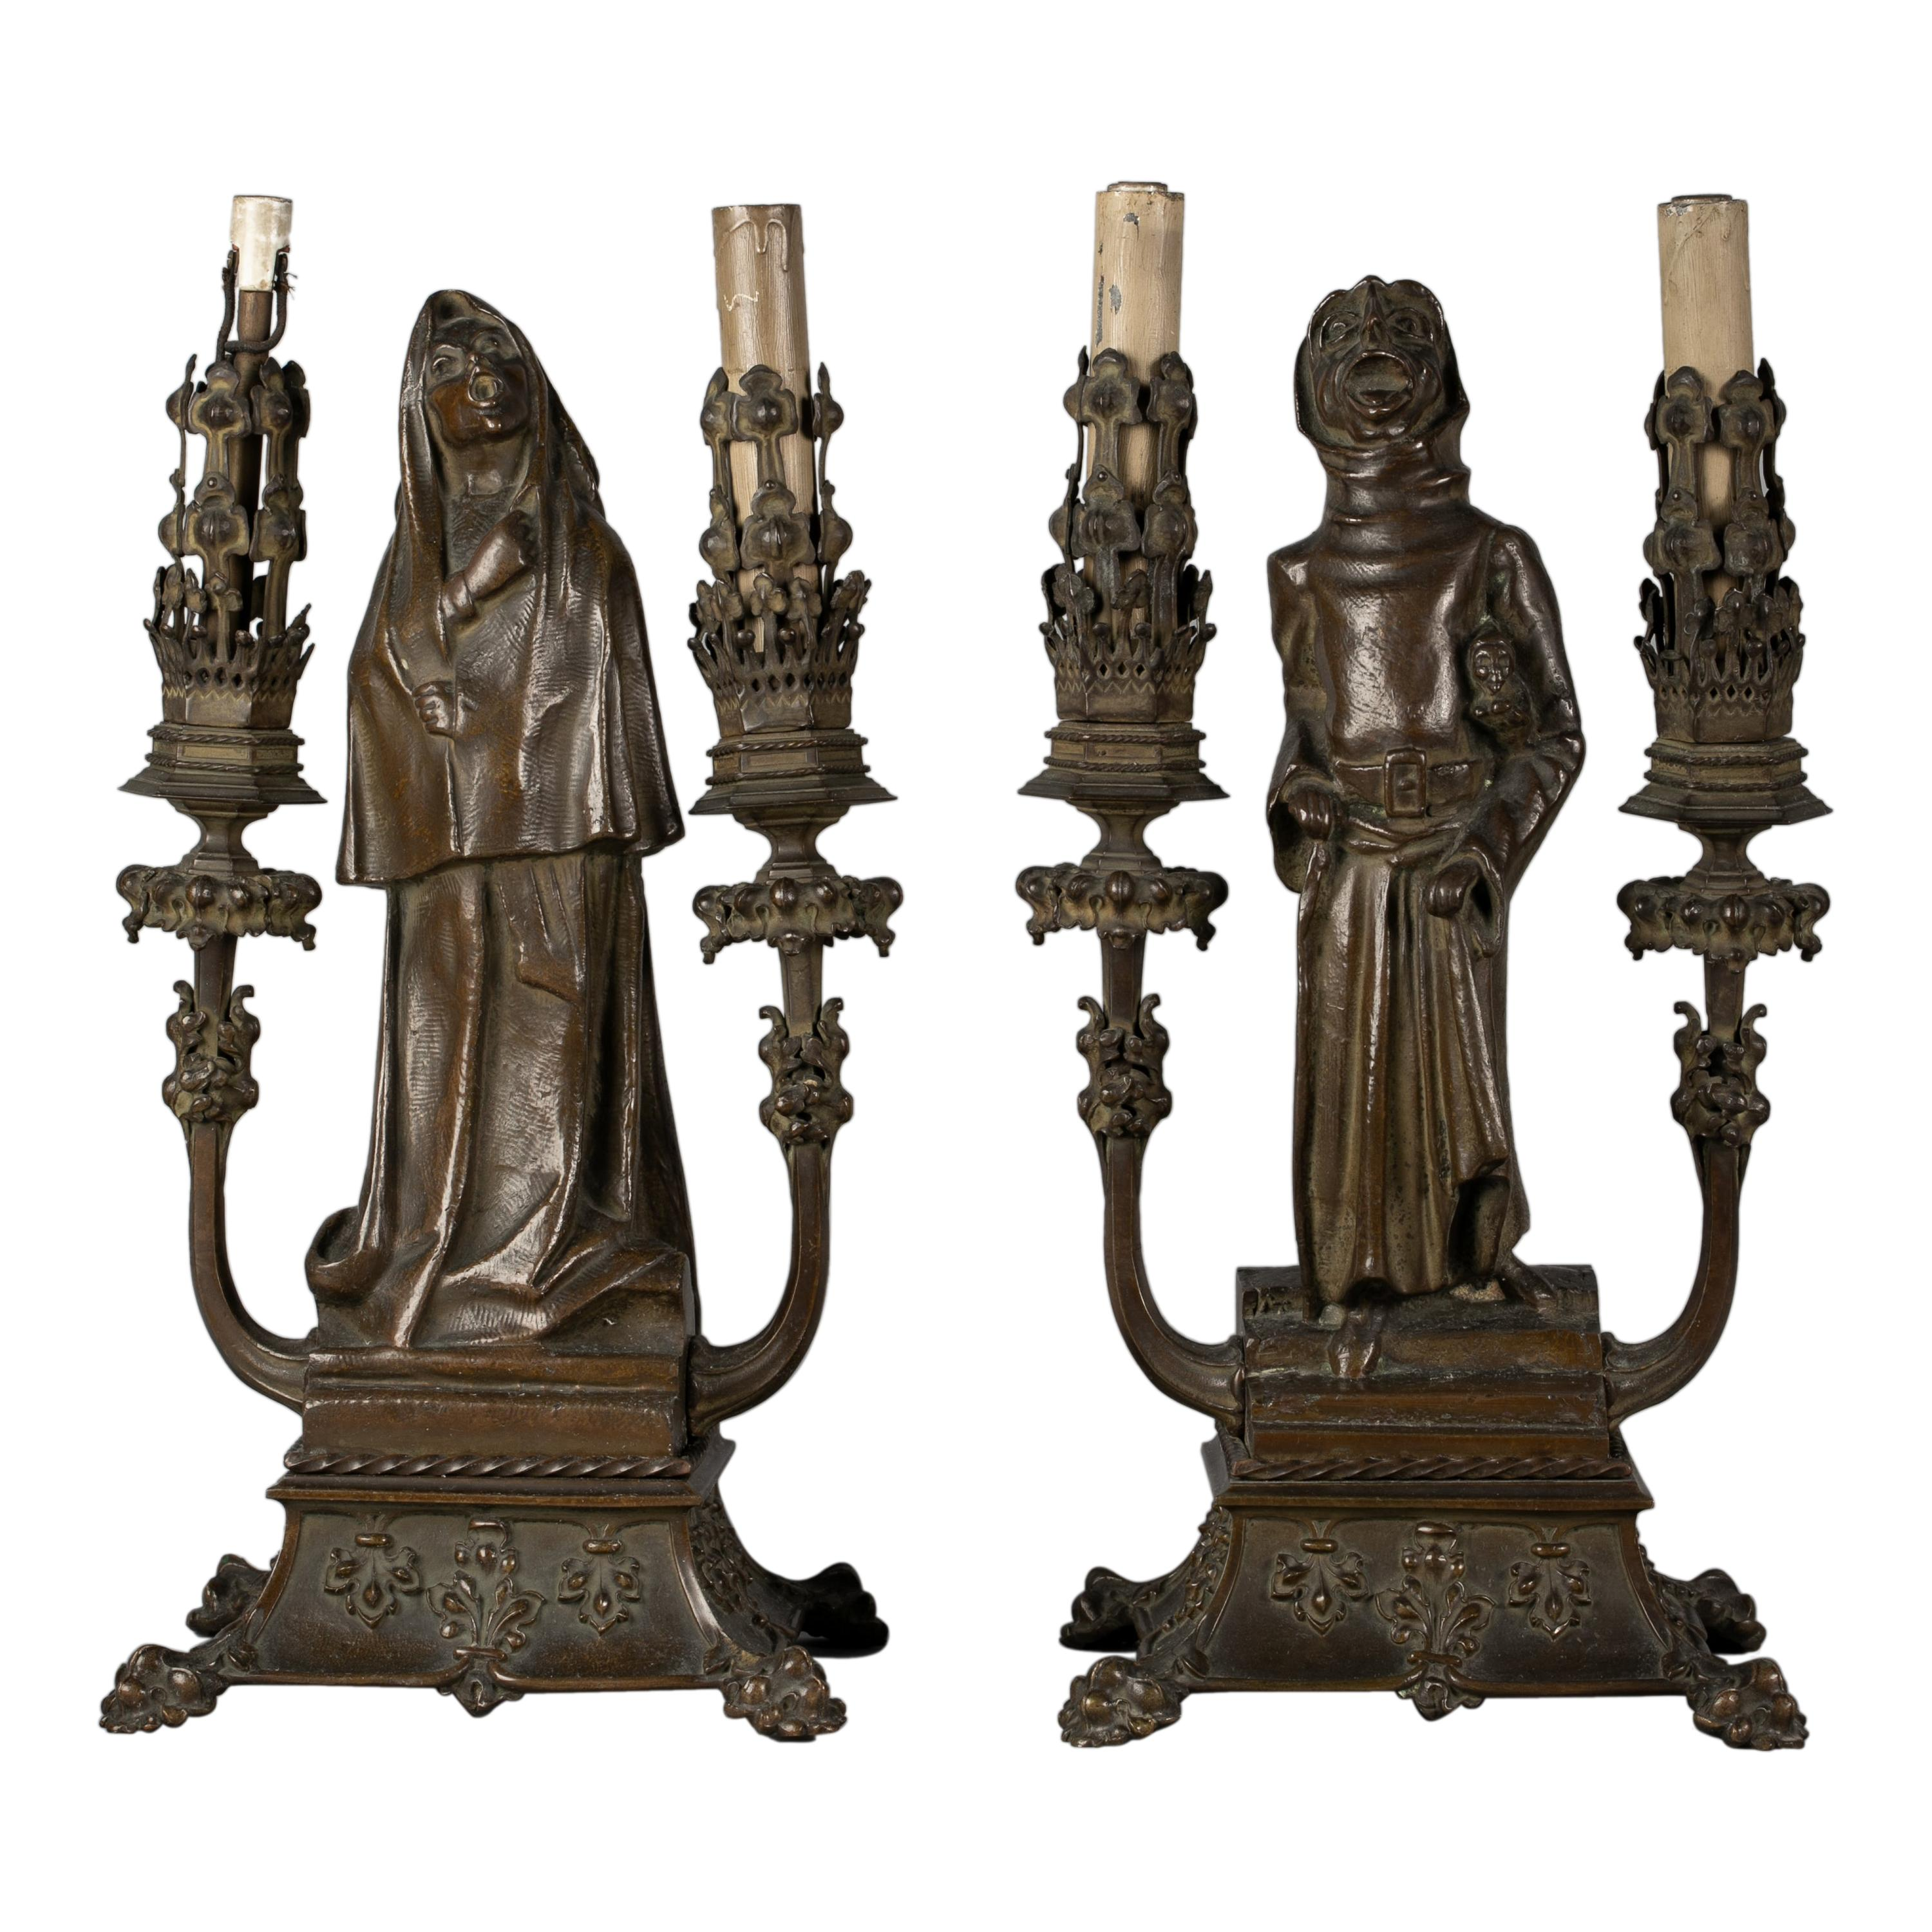 Pair of 'Fantasy' Patinated Bronze Two-Light Candelabra Lamps, circa 1910